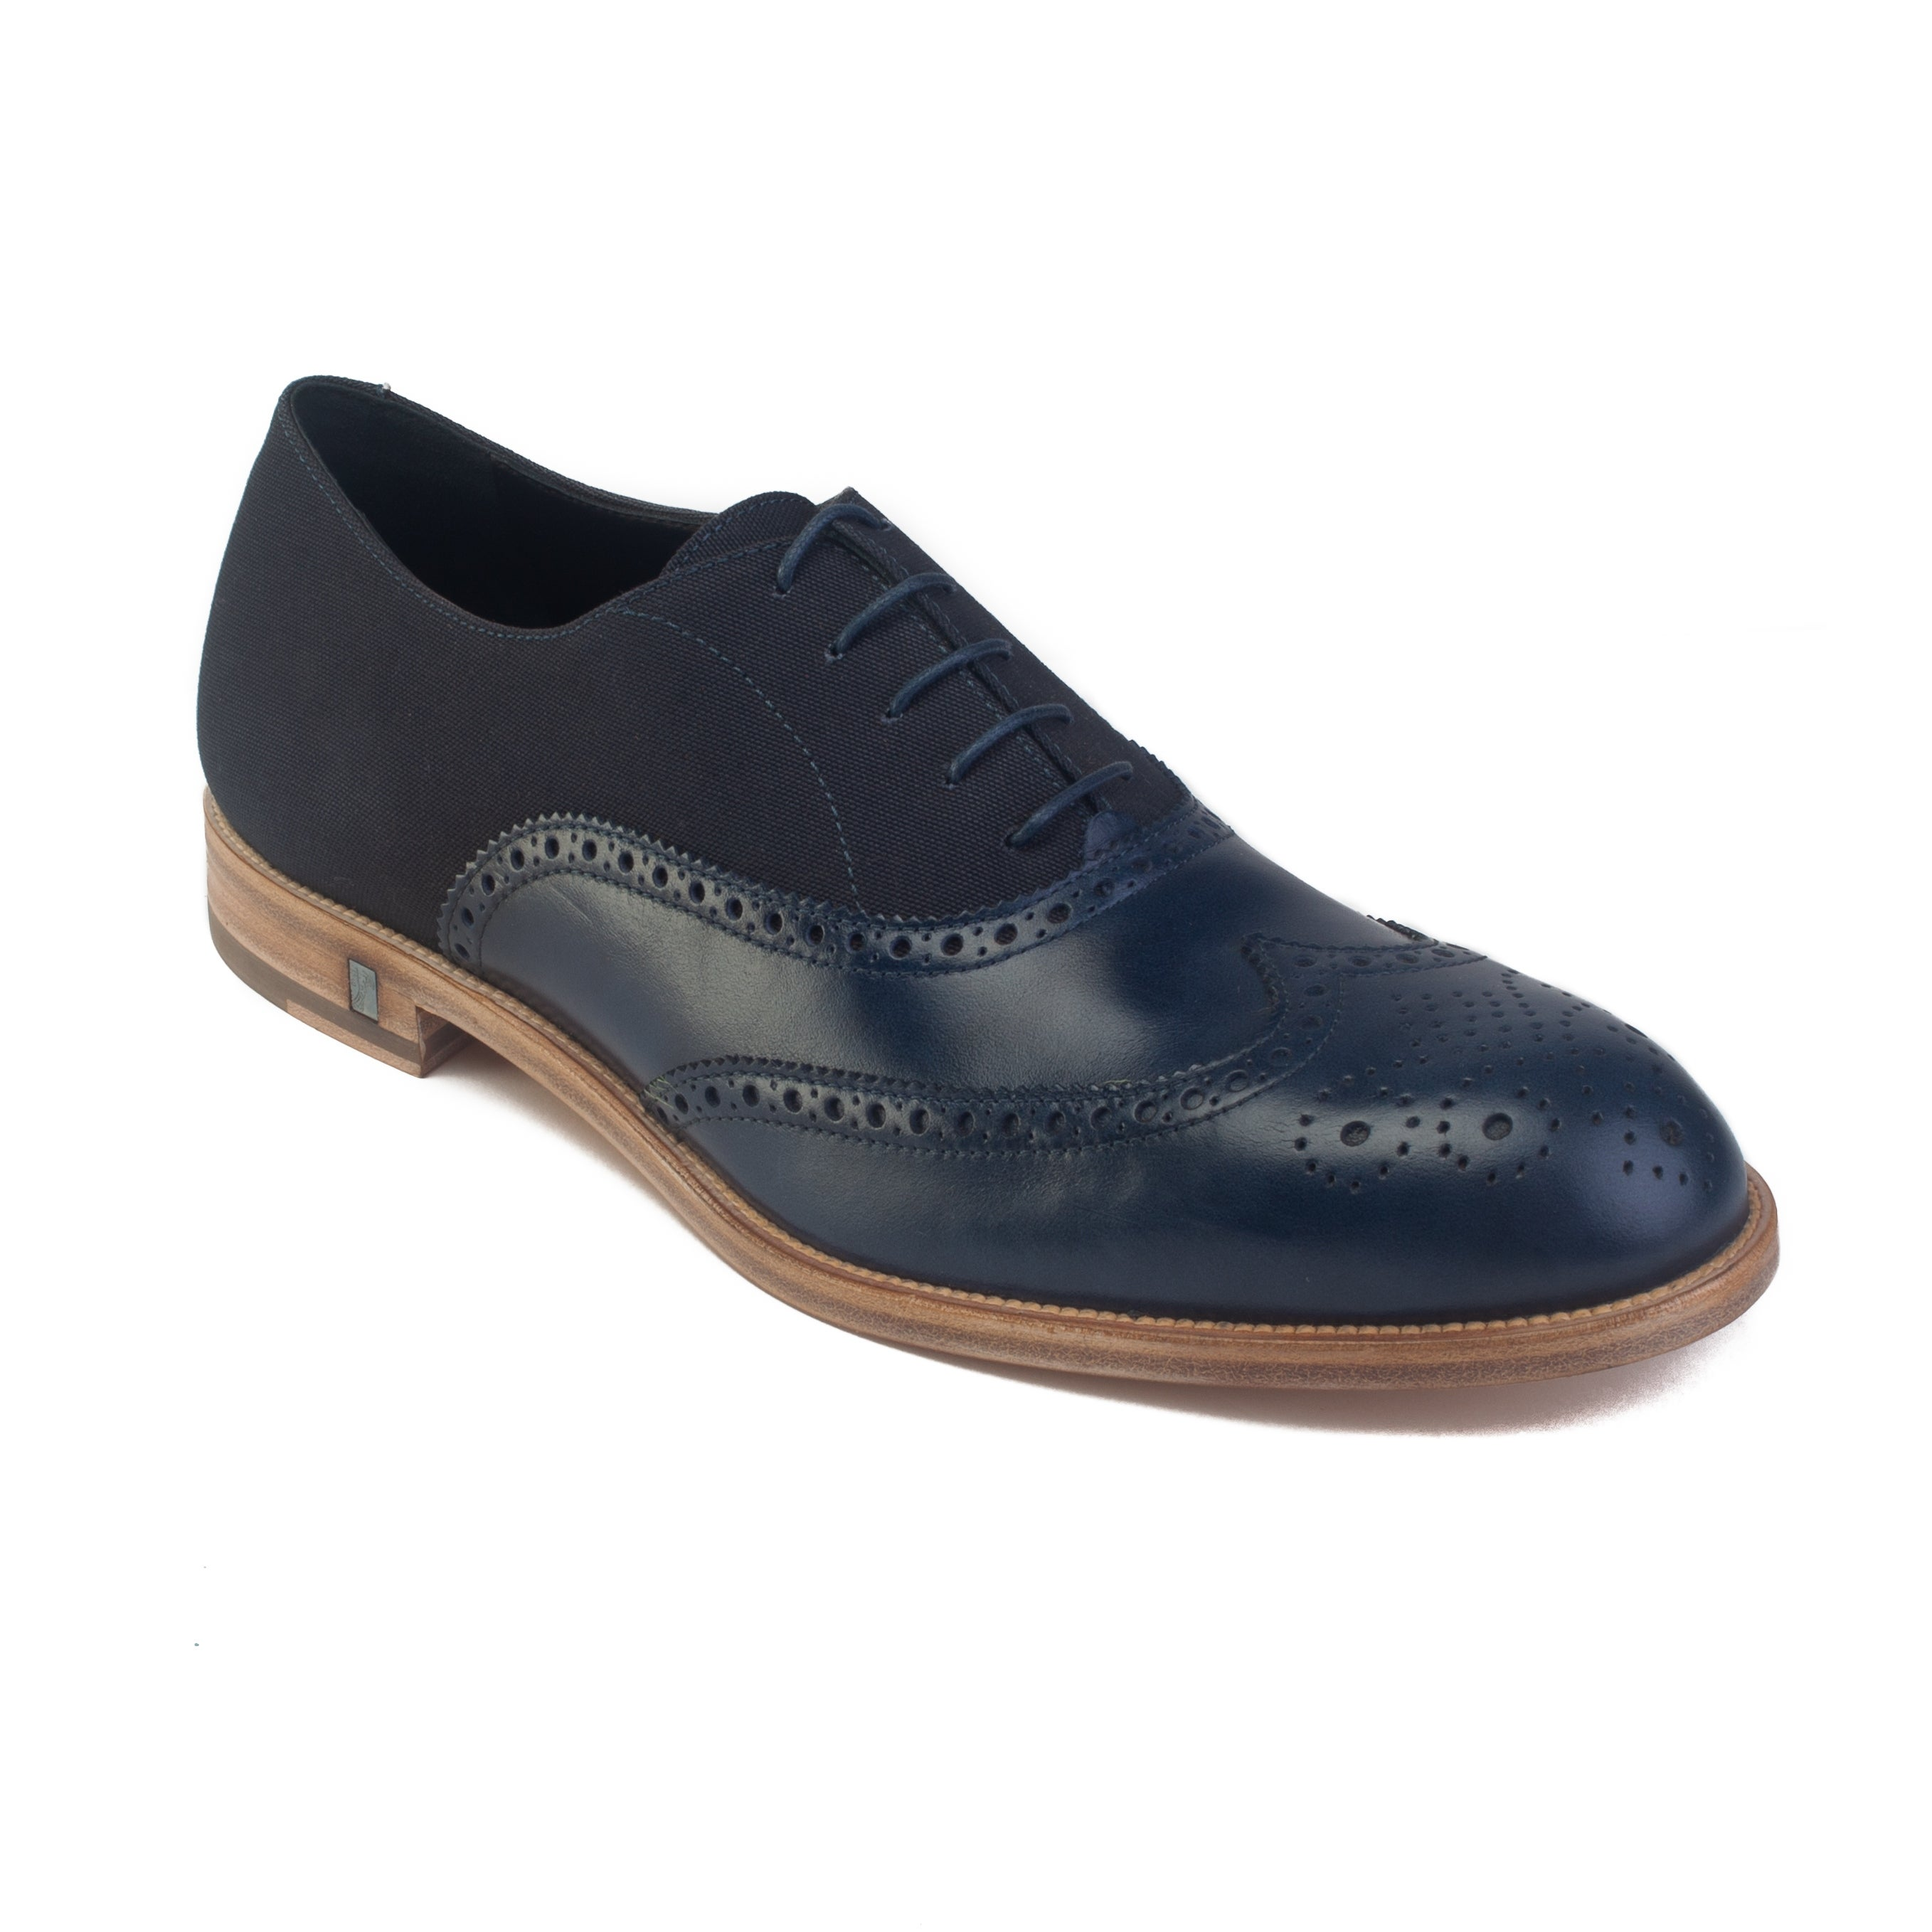 Versace Mens Leather Lace Up Brogue Derby Dress Shoes Navy Blue